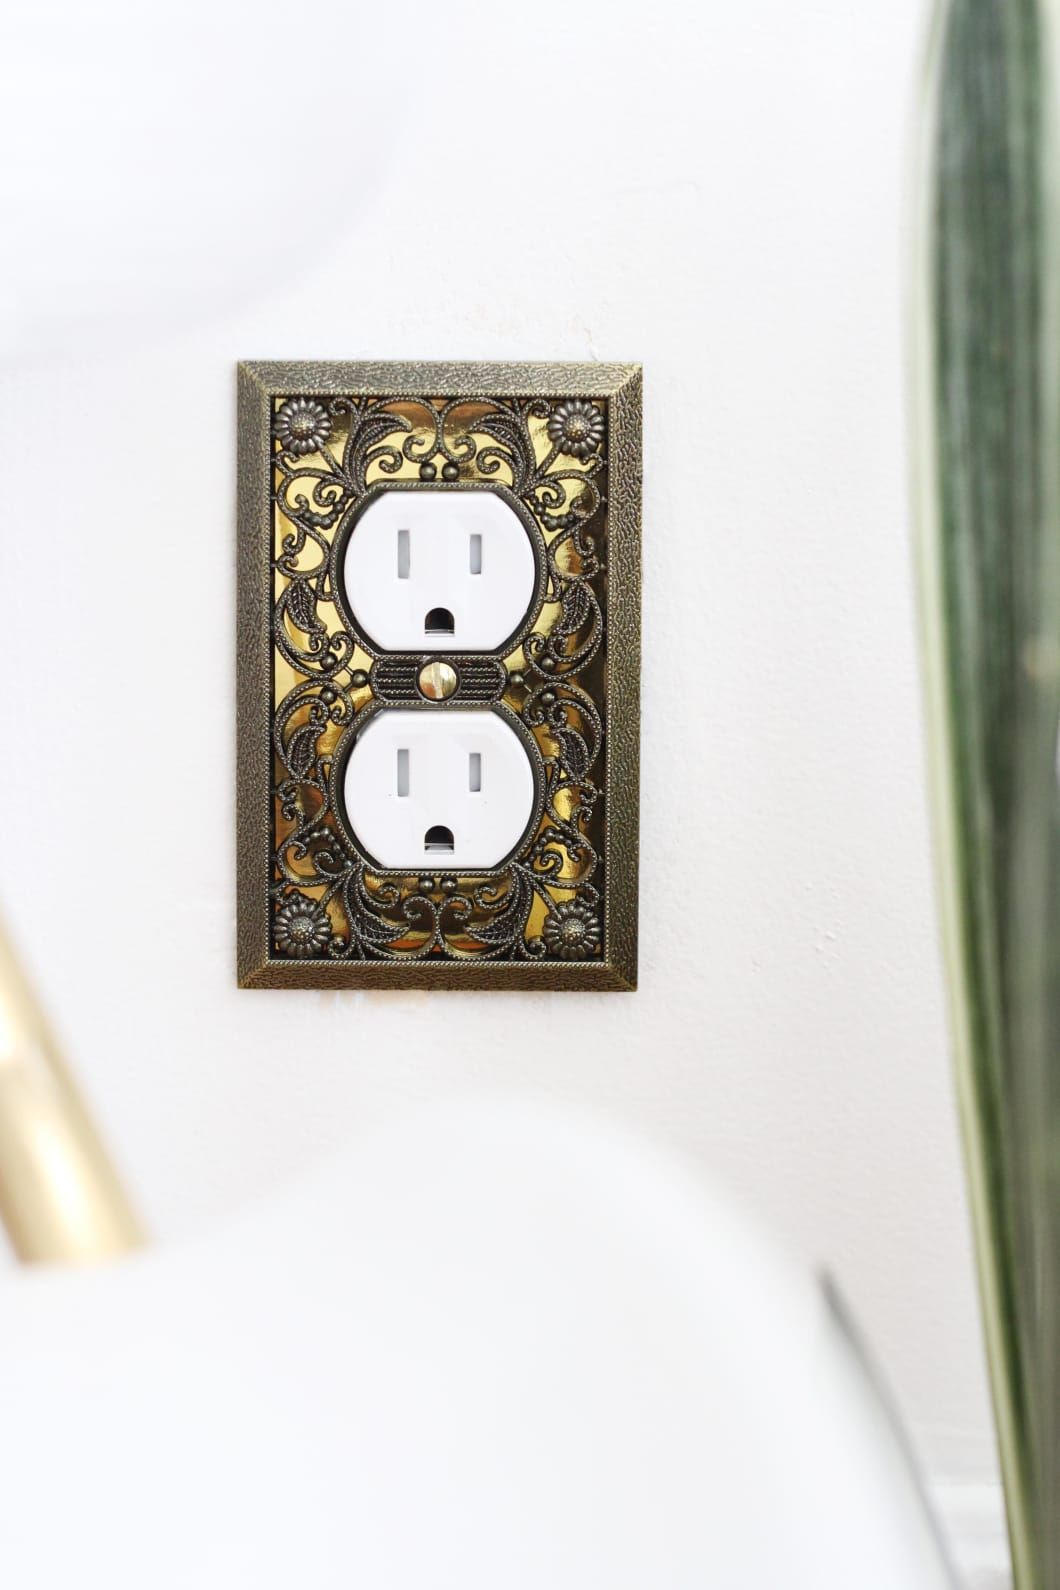 How To Swap A Two Prong For A Three Prong Outlet Electrical